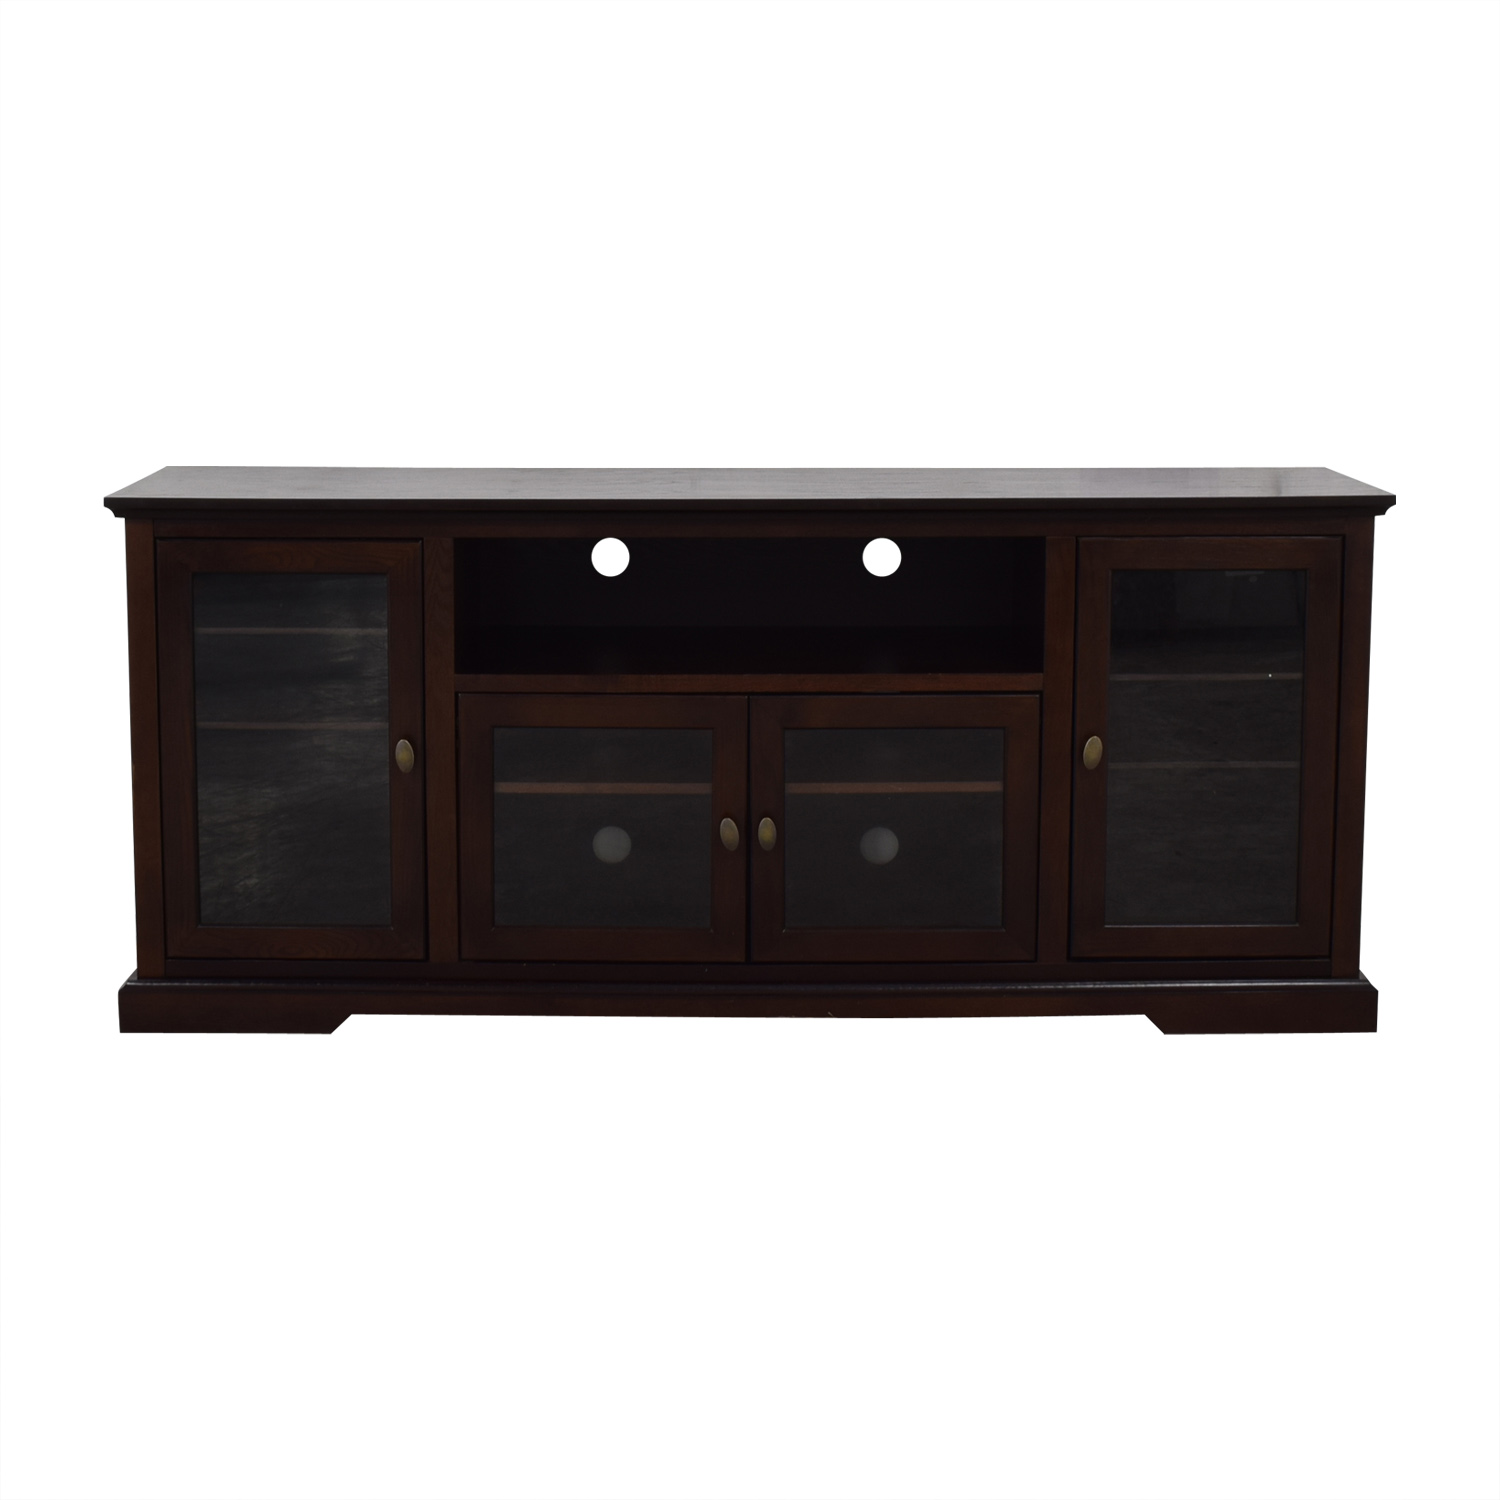 Wayfair Wayfair Glass & Wood Media Stand Media Units